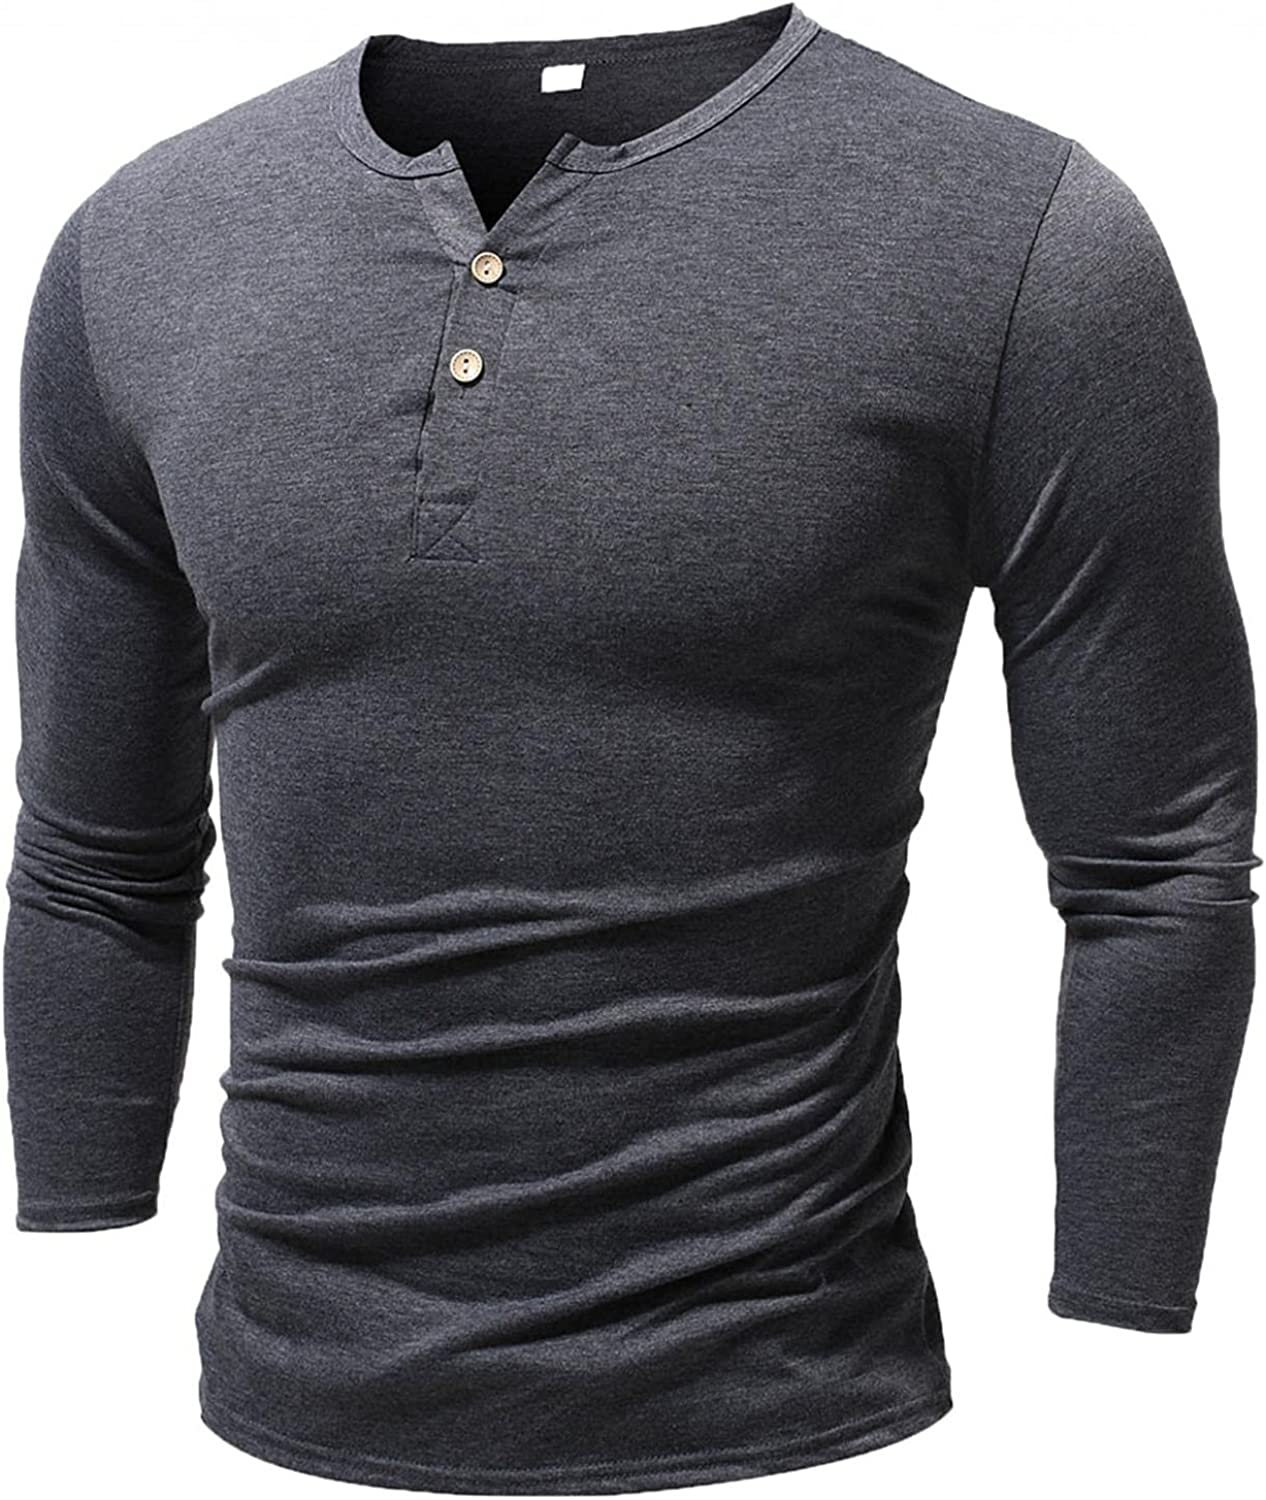 KEEYO Mens Casual Slim Fit Henley Shirts V-Neck Long Sleeve Basic Designer Lightweight Fashion Cotton Muscle Cut Off Tops